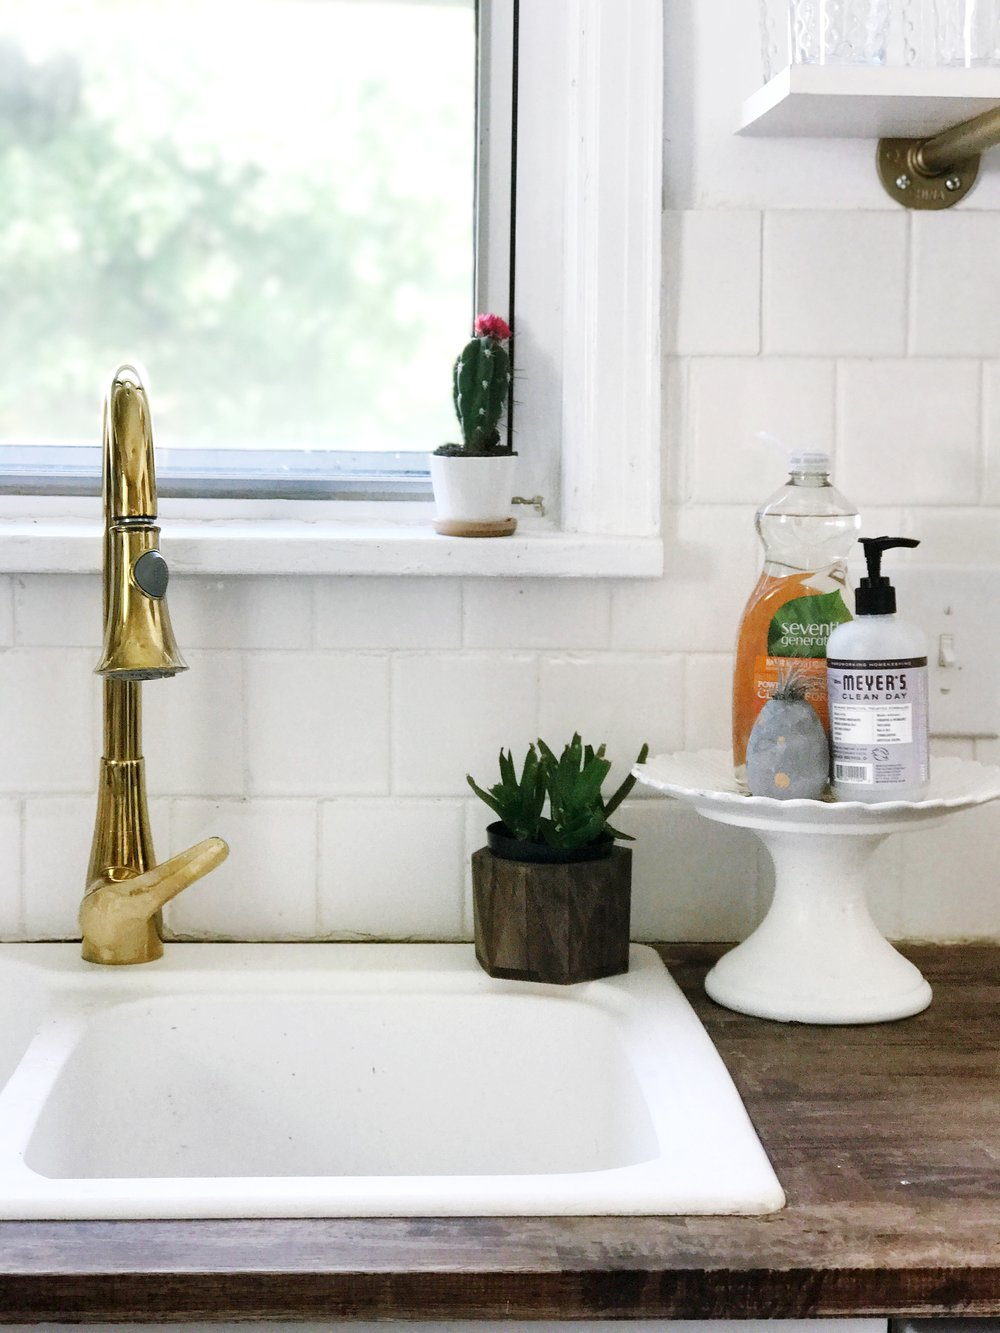 This faucet was the item I was the most excited about! I had seen them in magazines and Pinterest and could not wait to add one to our home. I found ours on Amazon for $105!